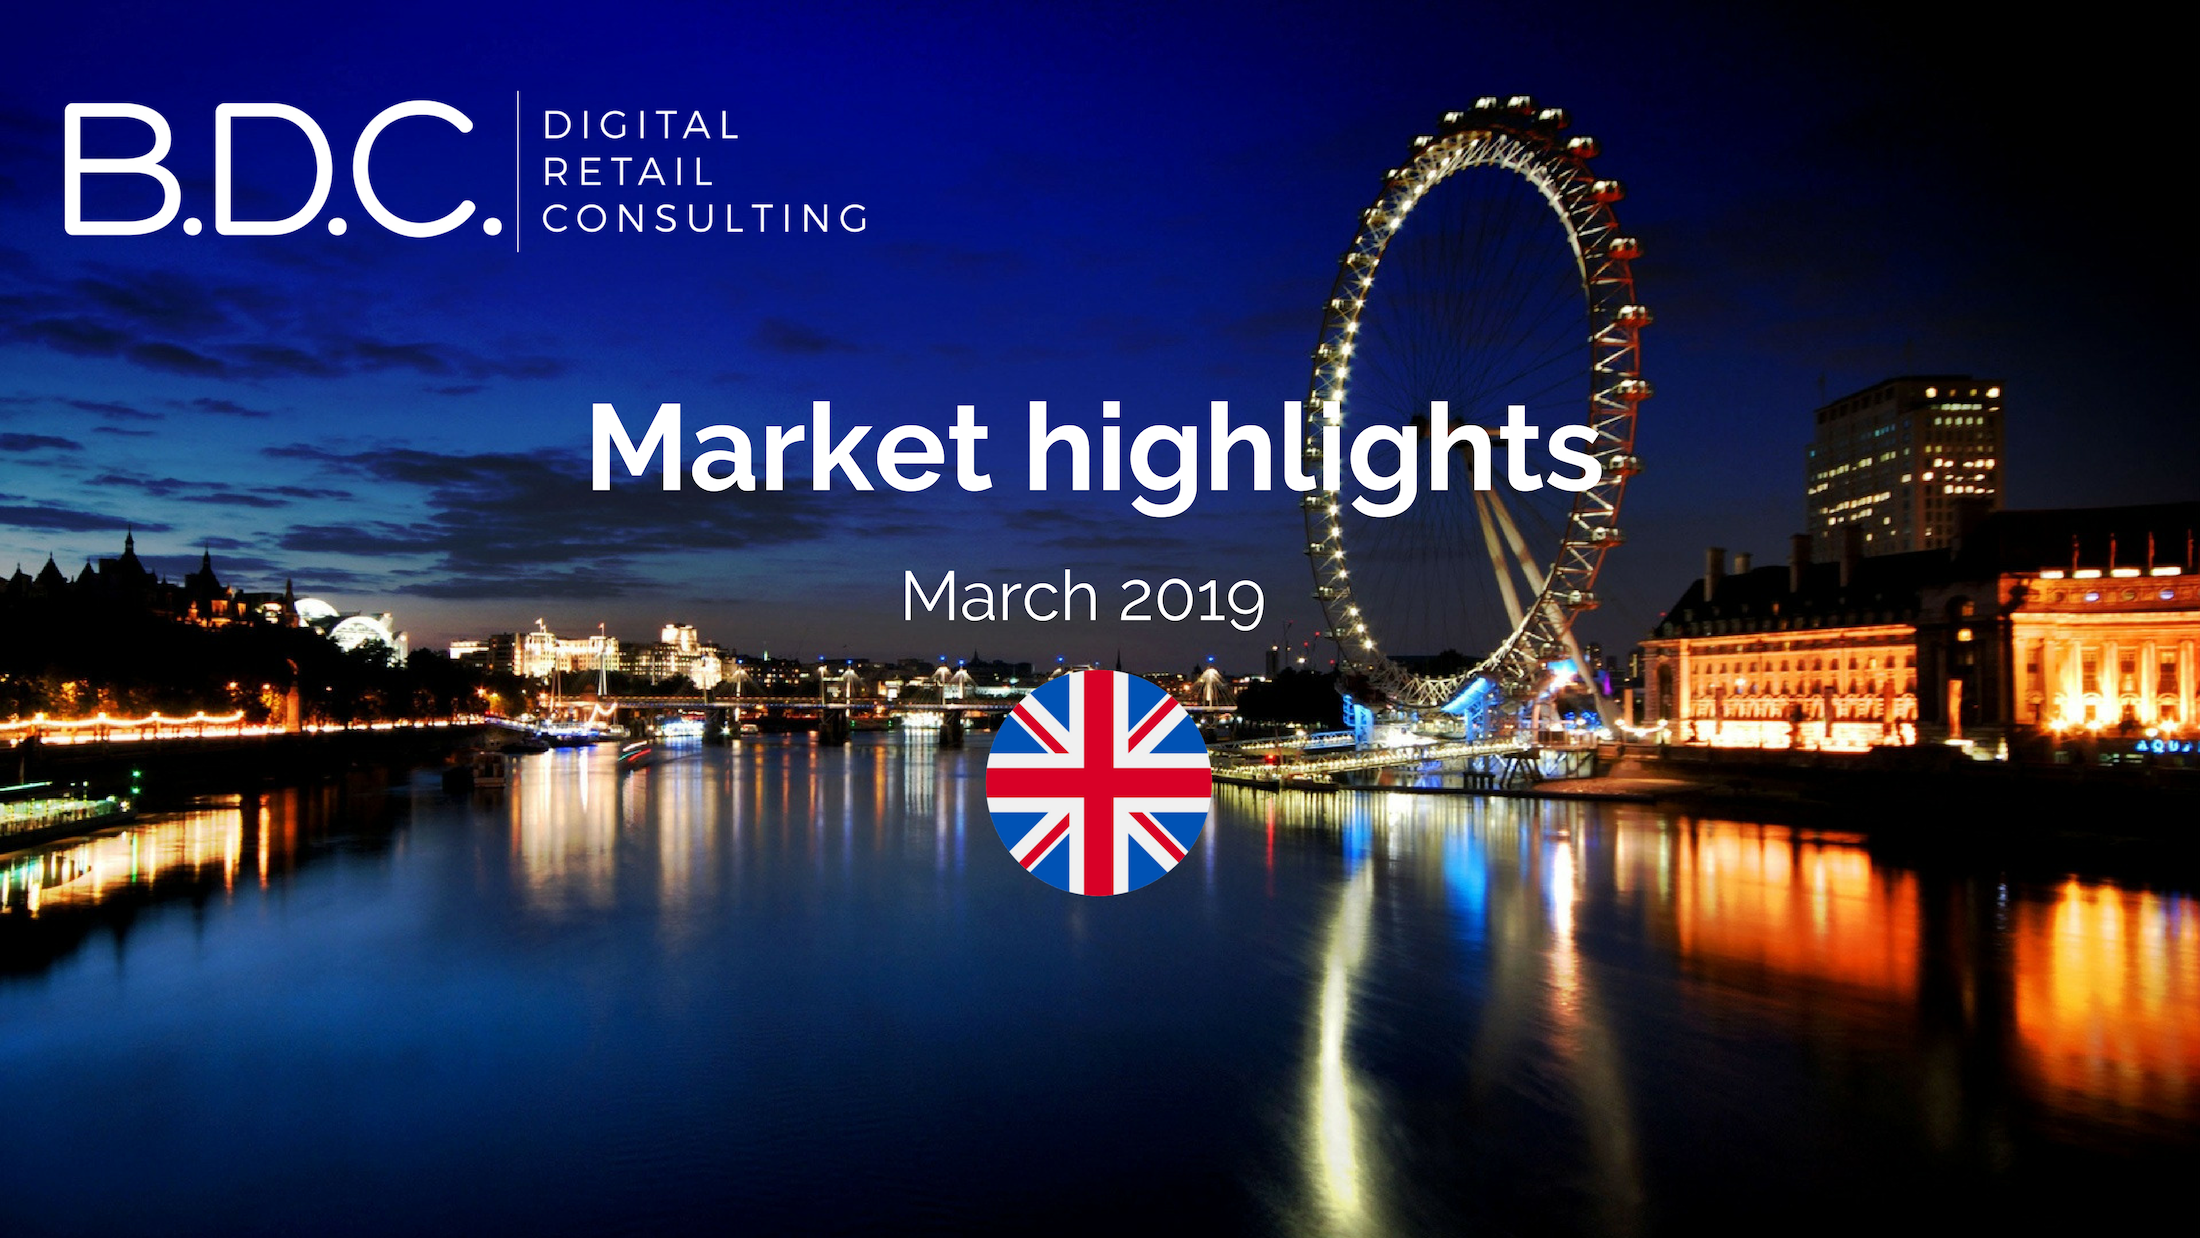 Trends News - UK MARKET HIGHLIGHTS – MARCH 2019